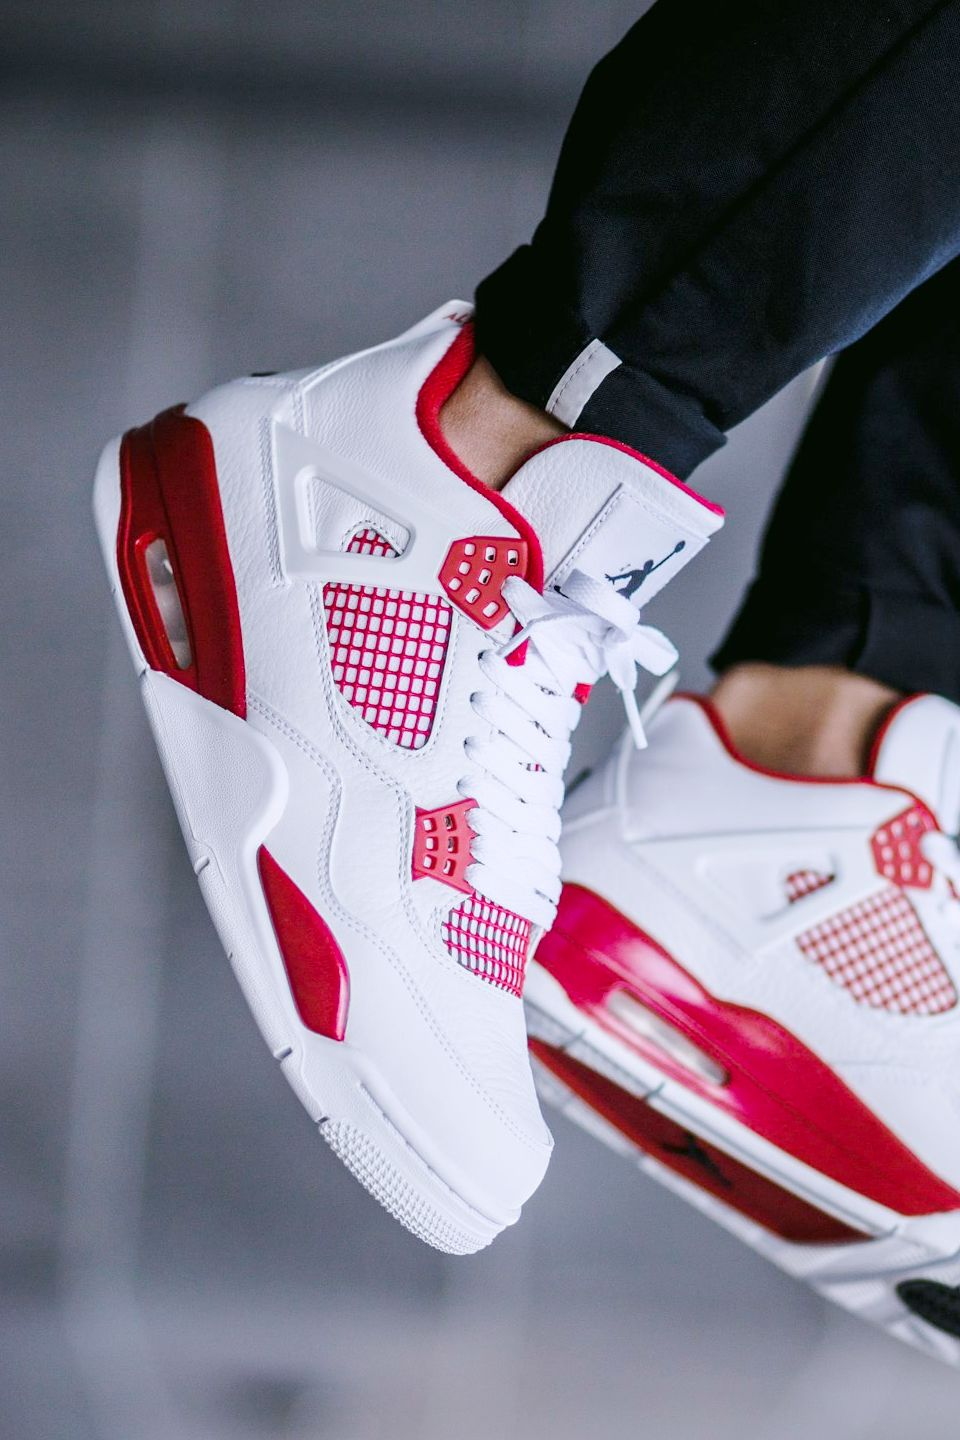 wholesale dealer e1dc1 4004e Air Jordan 4 Retro  Alternate 89  (via Kicks-daily.com)